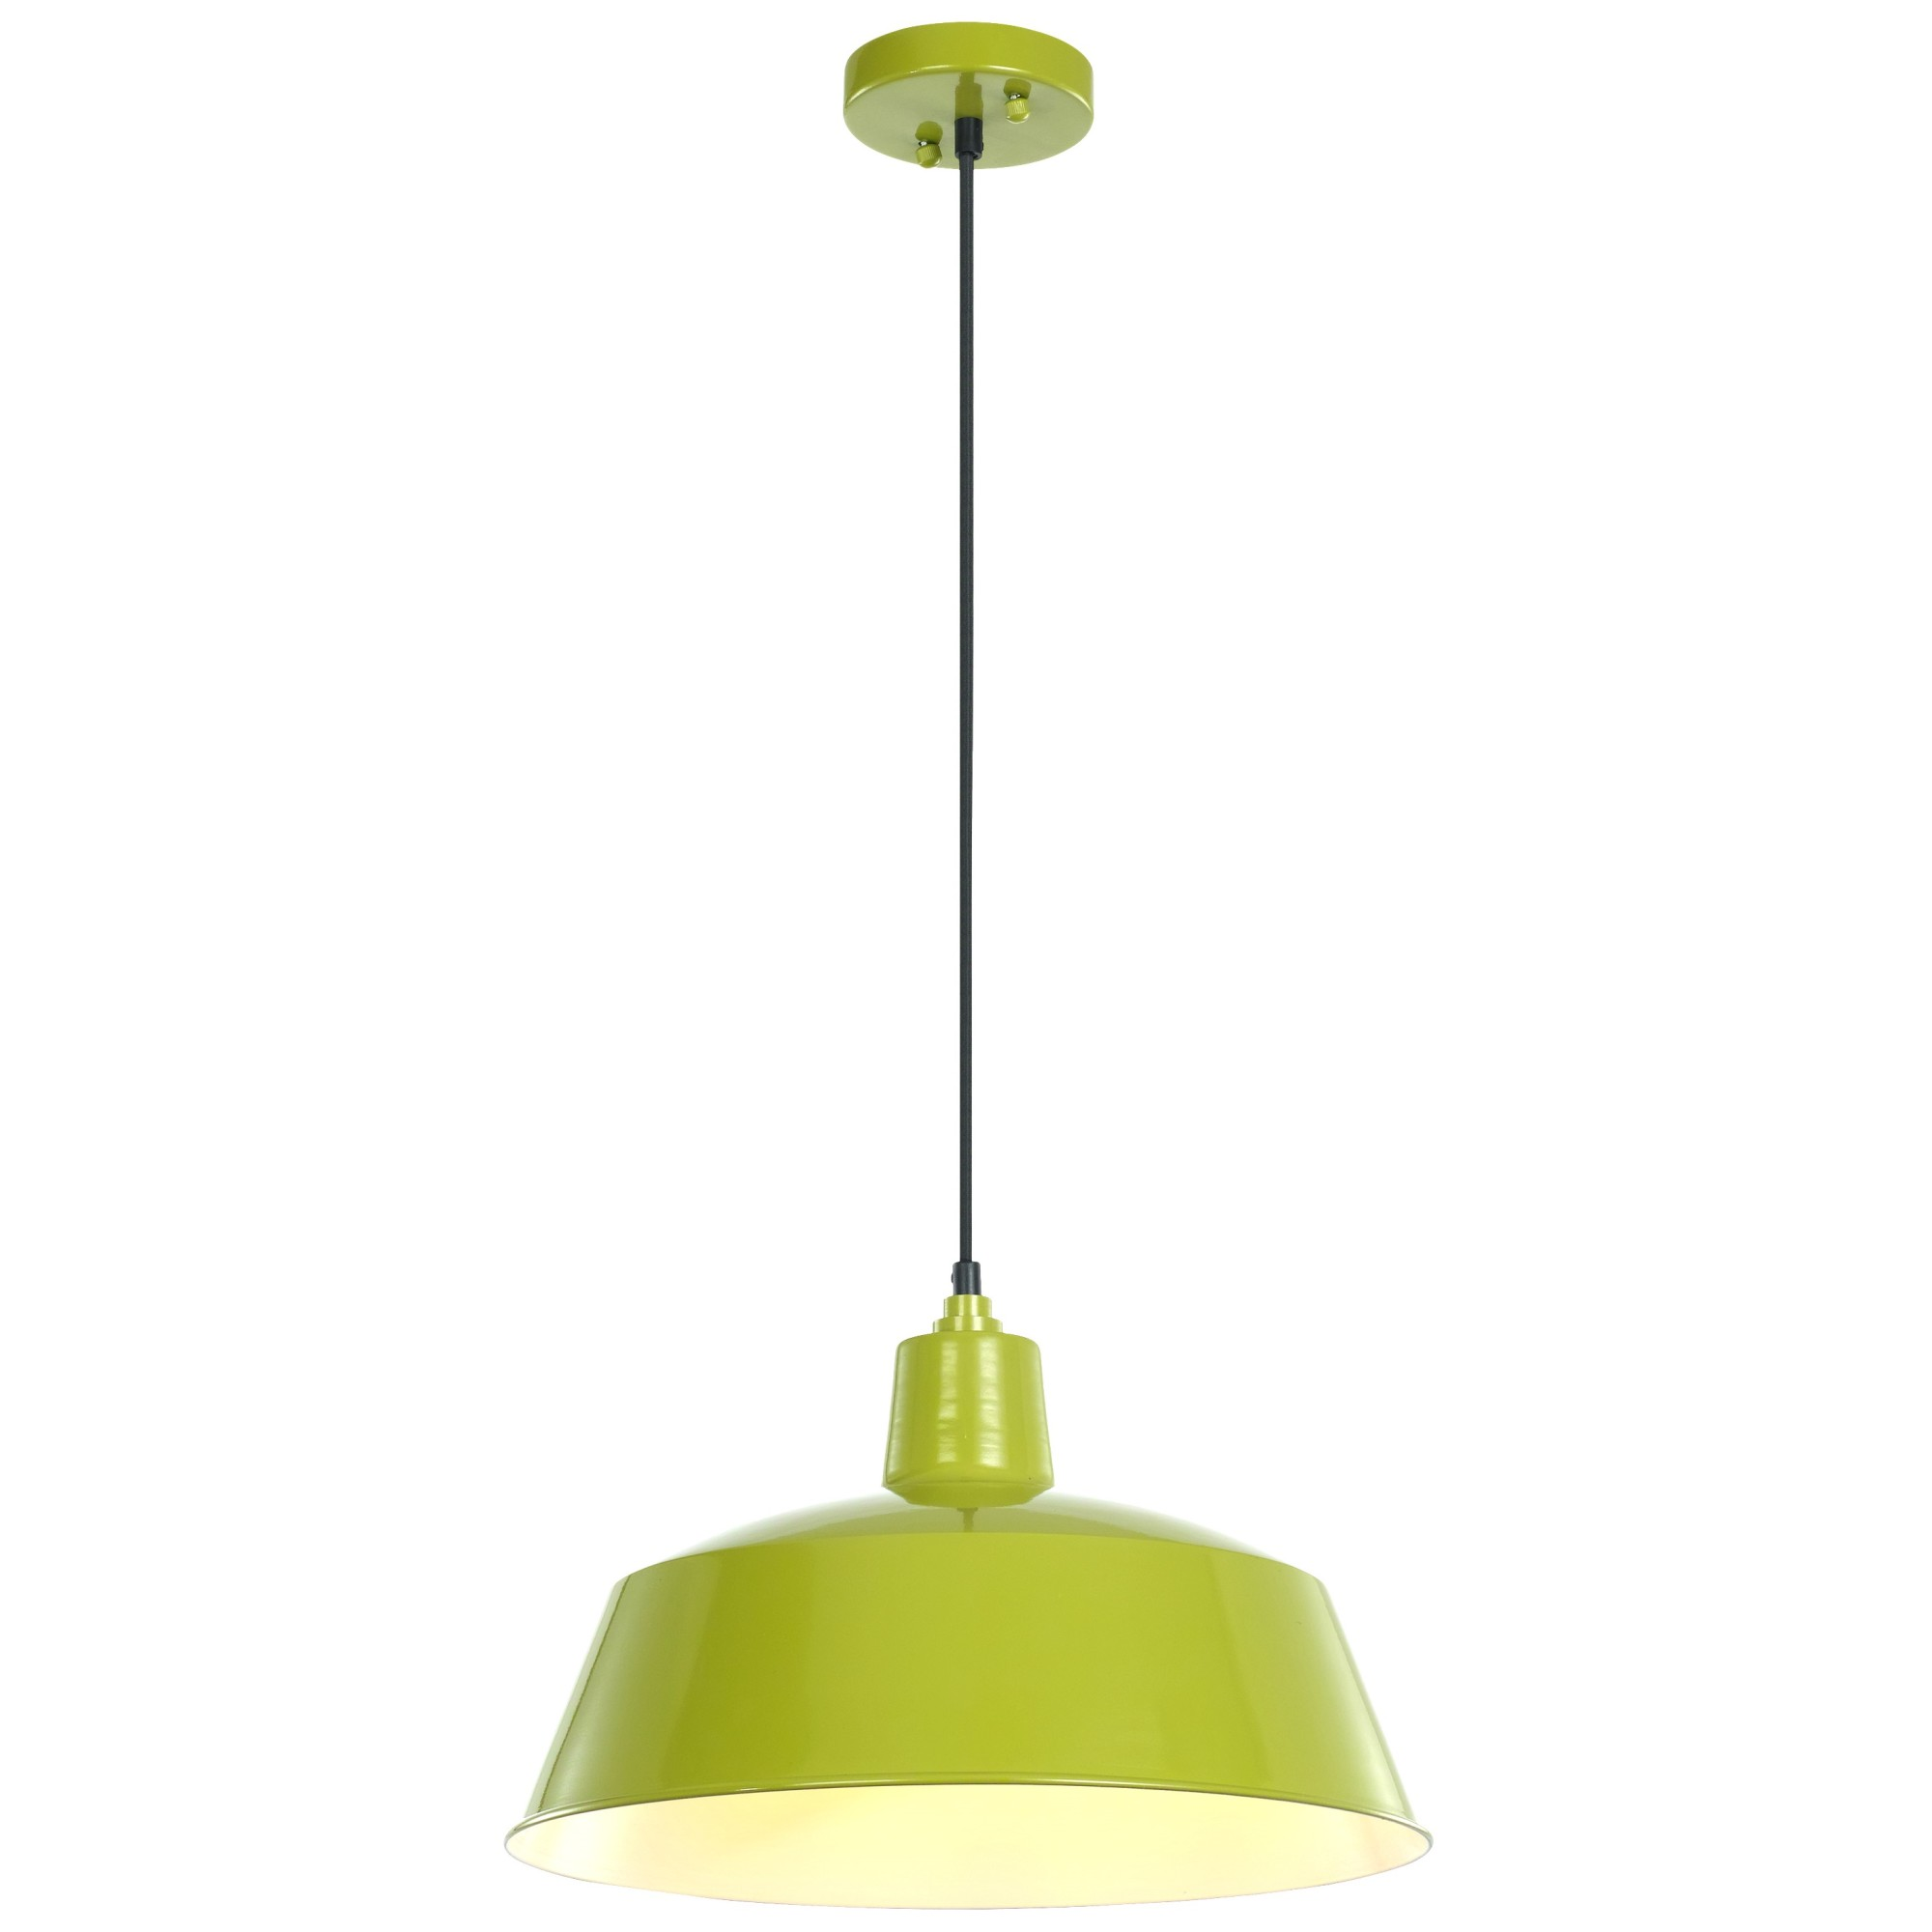 """LEDPAX Kenai Pendant Fixture, Steel Shade with Textile Cable – Lime Green, 16.5"""" X 9"""""""